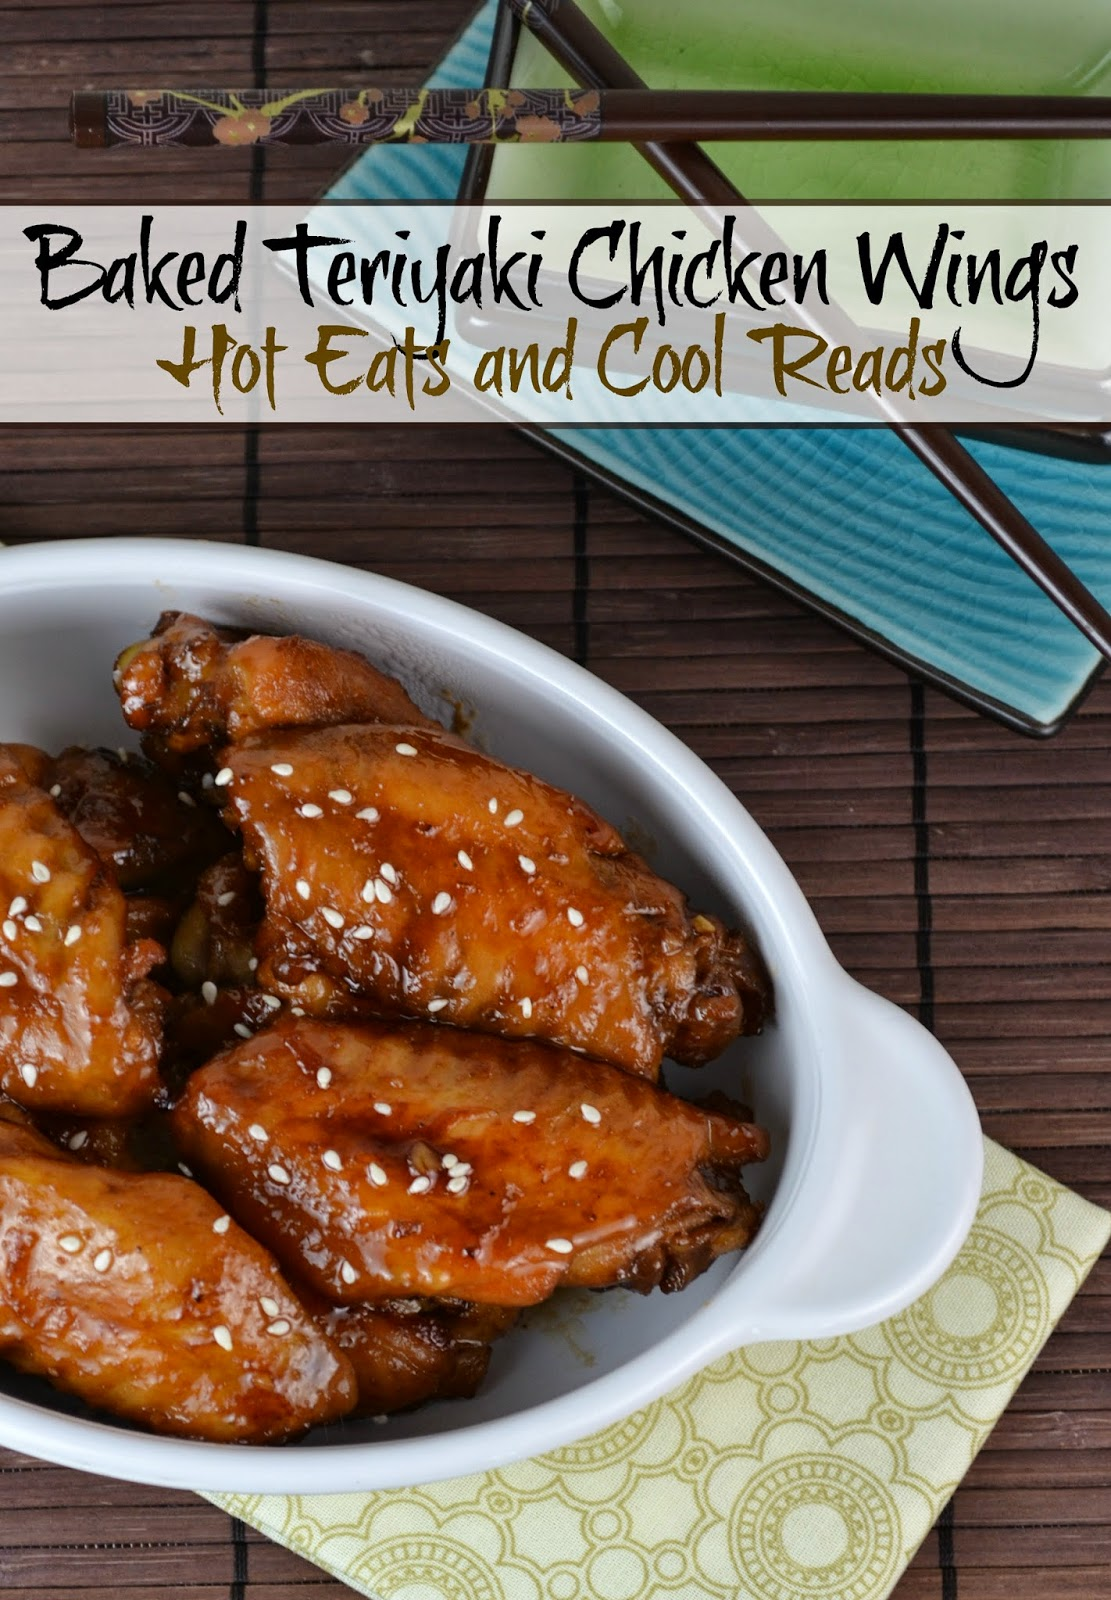 A perfect appetizer for game day or any party! Uses mostly pantry ingredients and baked in the oven to perfection! Baked Glazed Teriyaki Chicken Wings from Hot Eats and Cool Reads